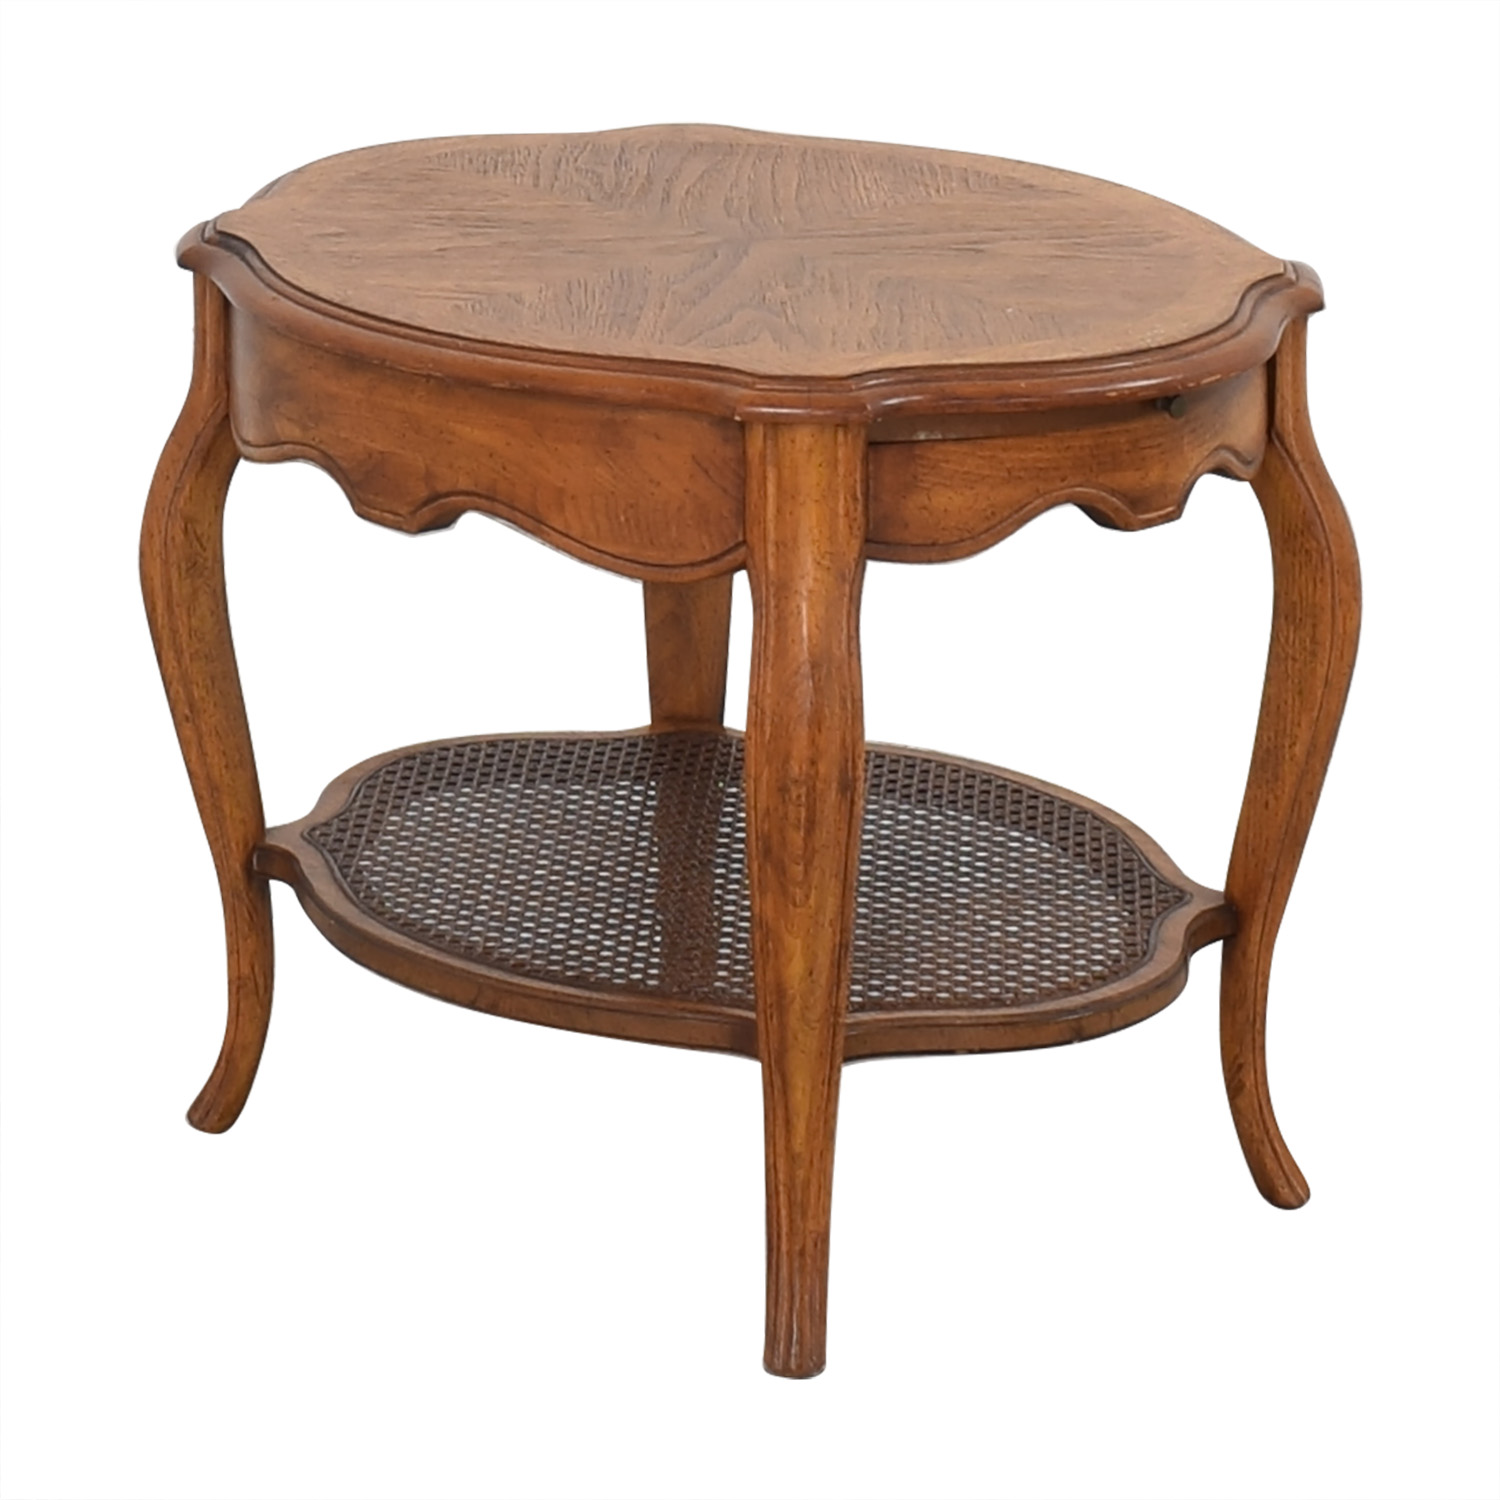 Vintage End Table with Pull Out Tray on sale